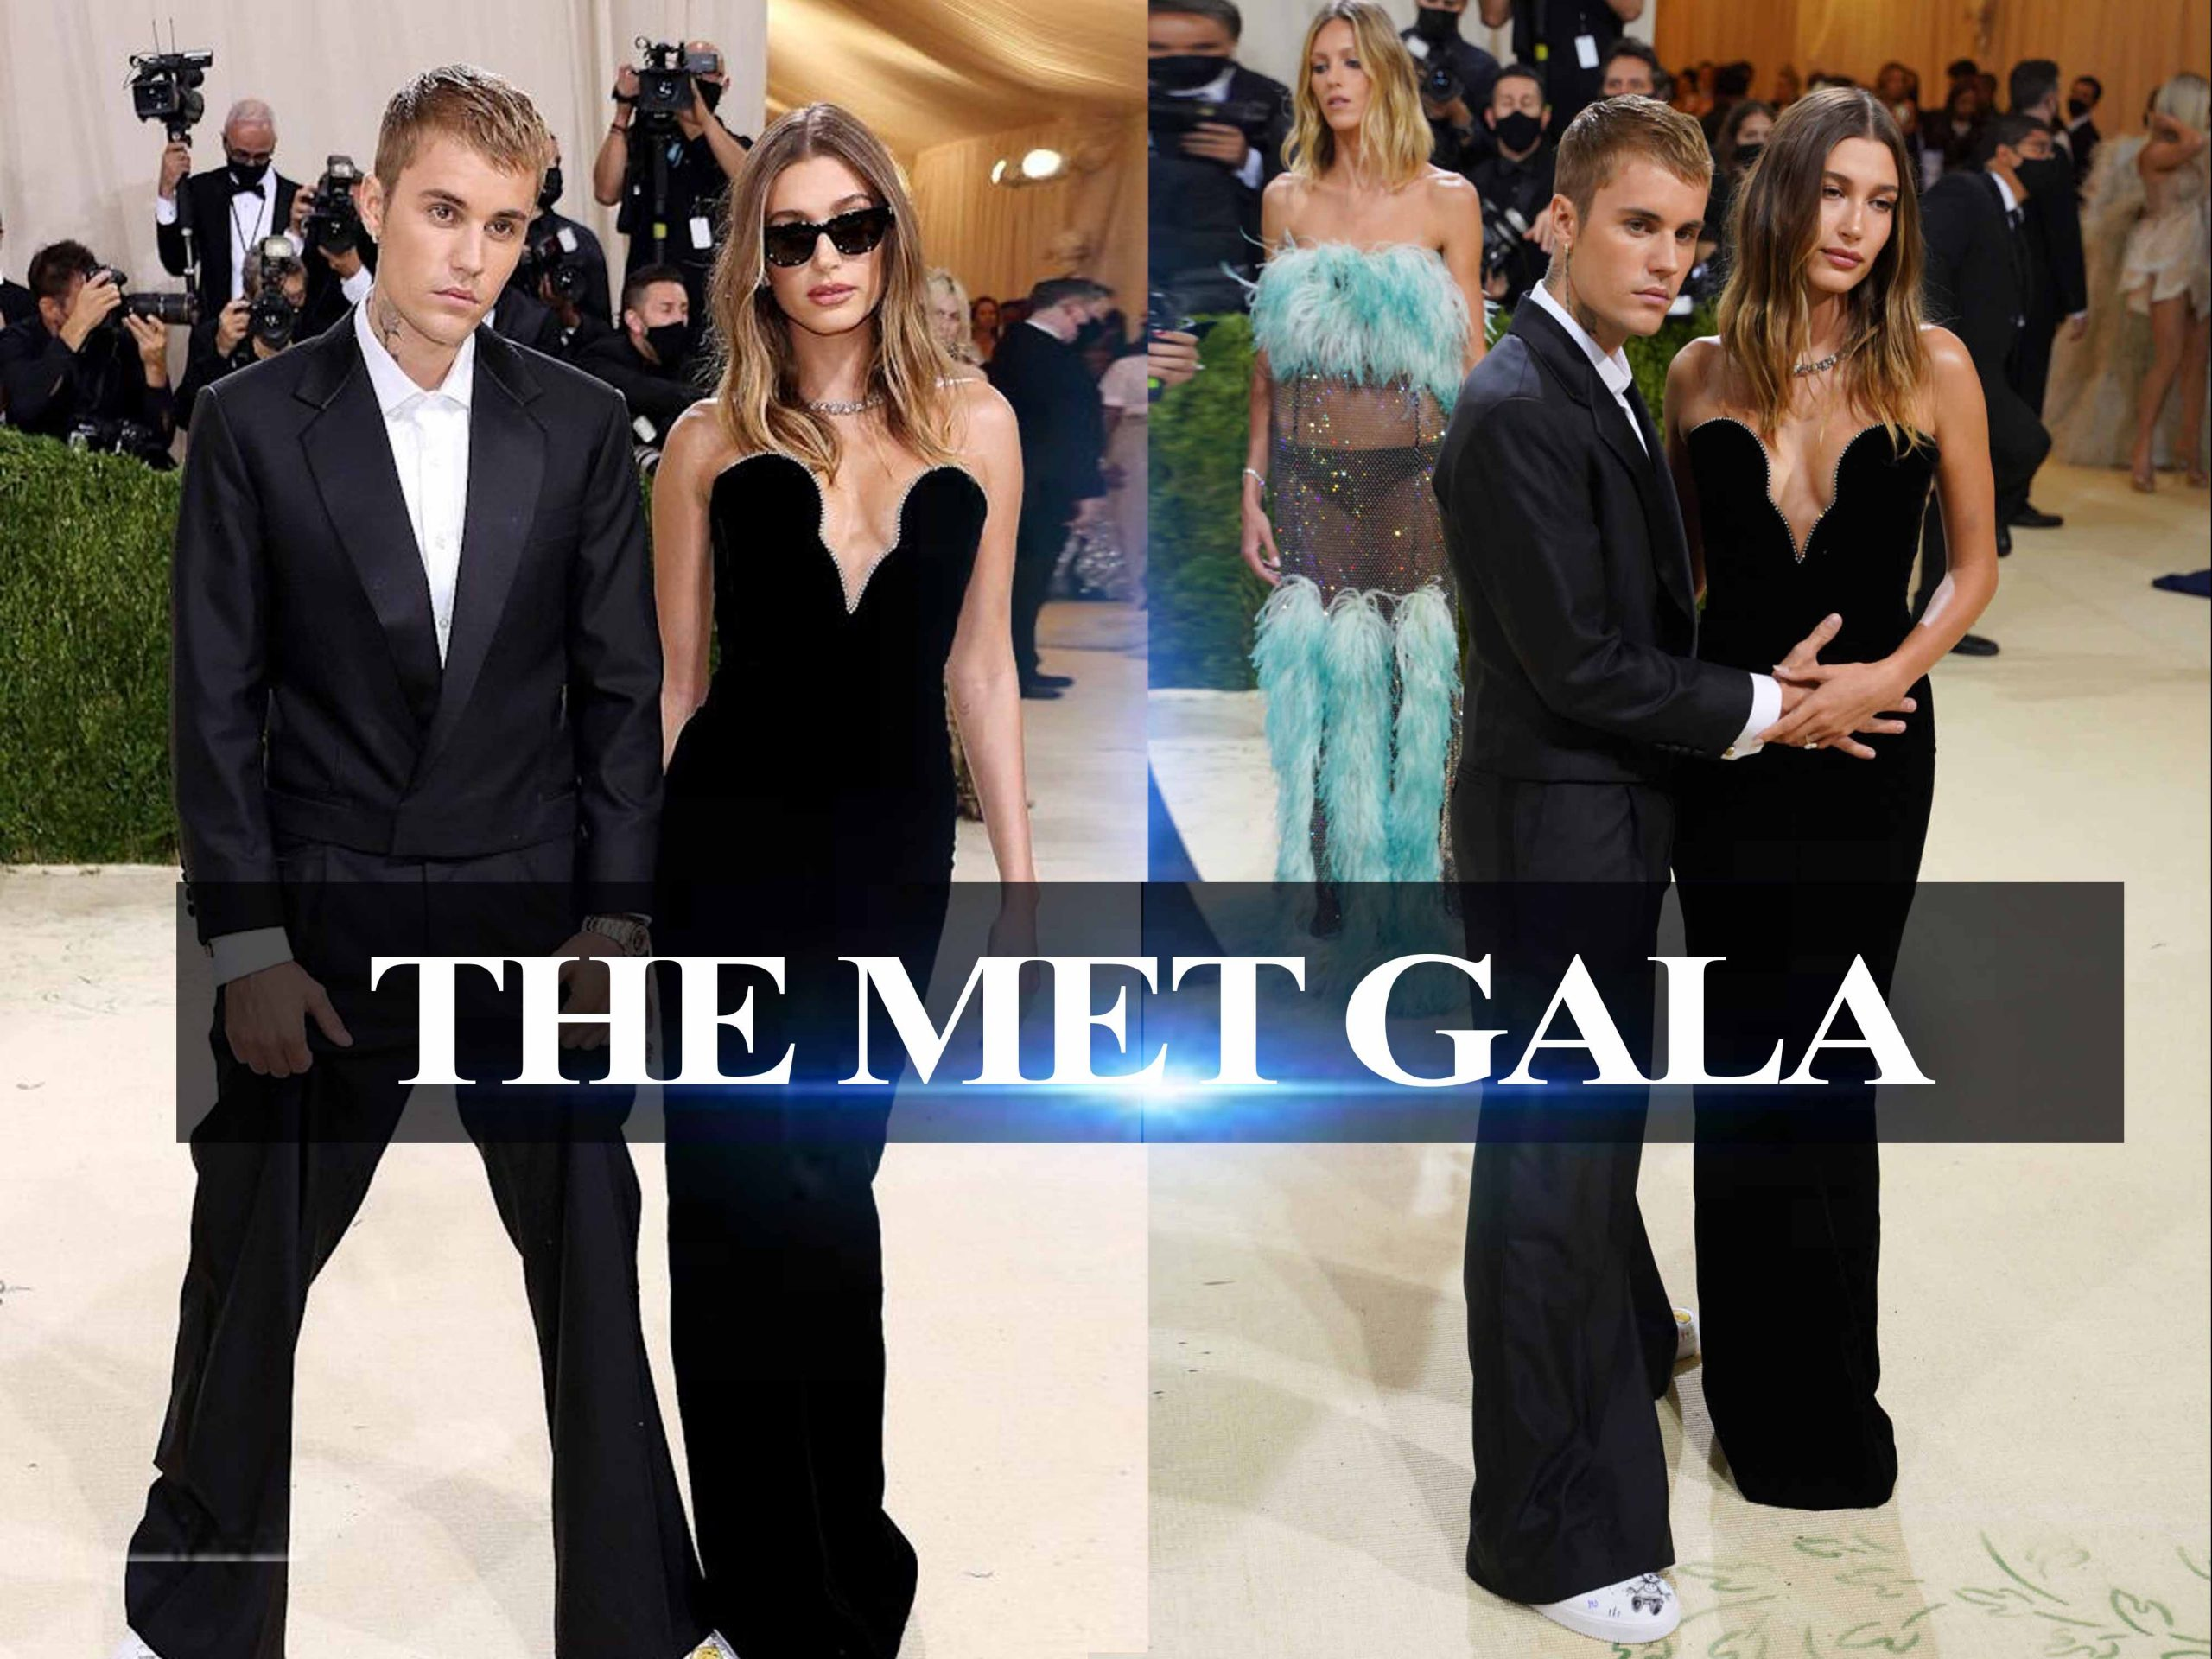 Justin Bieber Accidentally Revealed Hailey Is Pregnant at the Met Gala